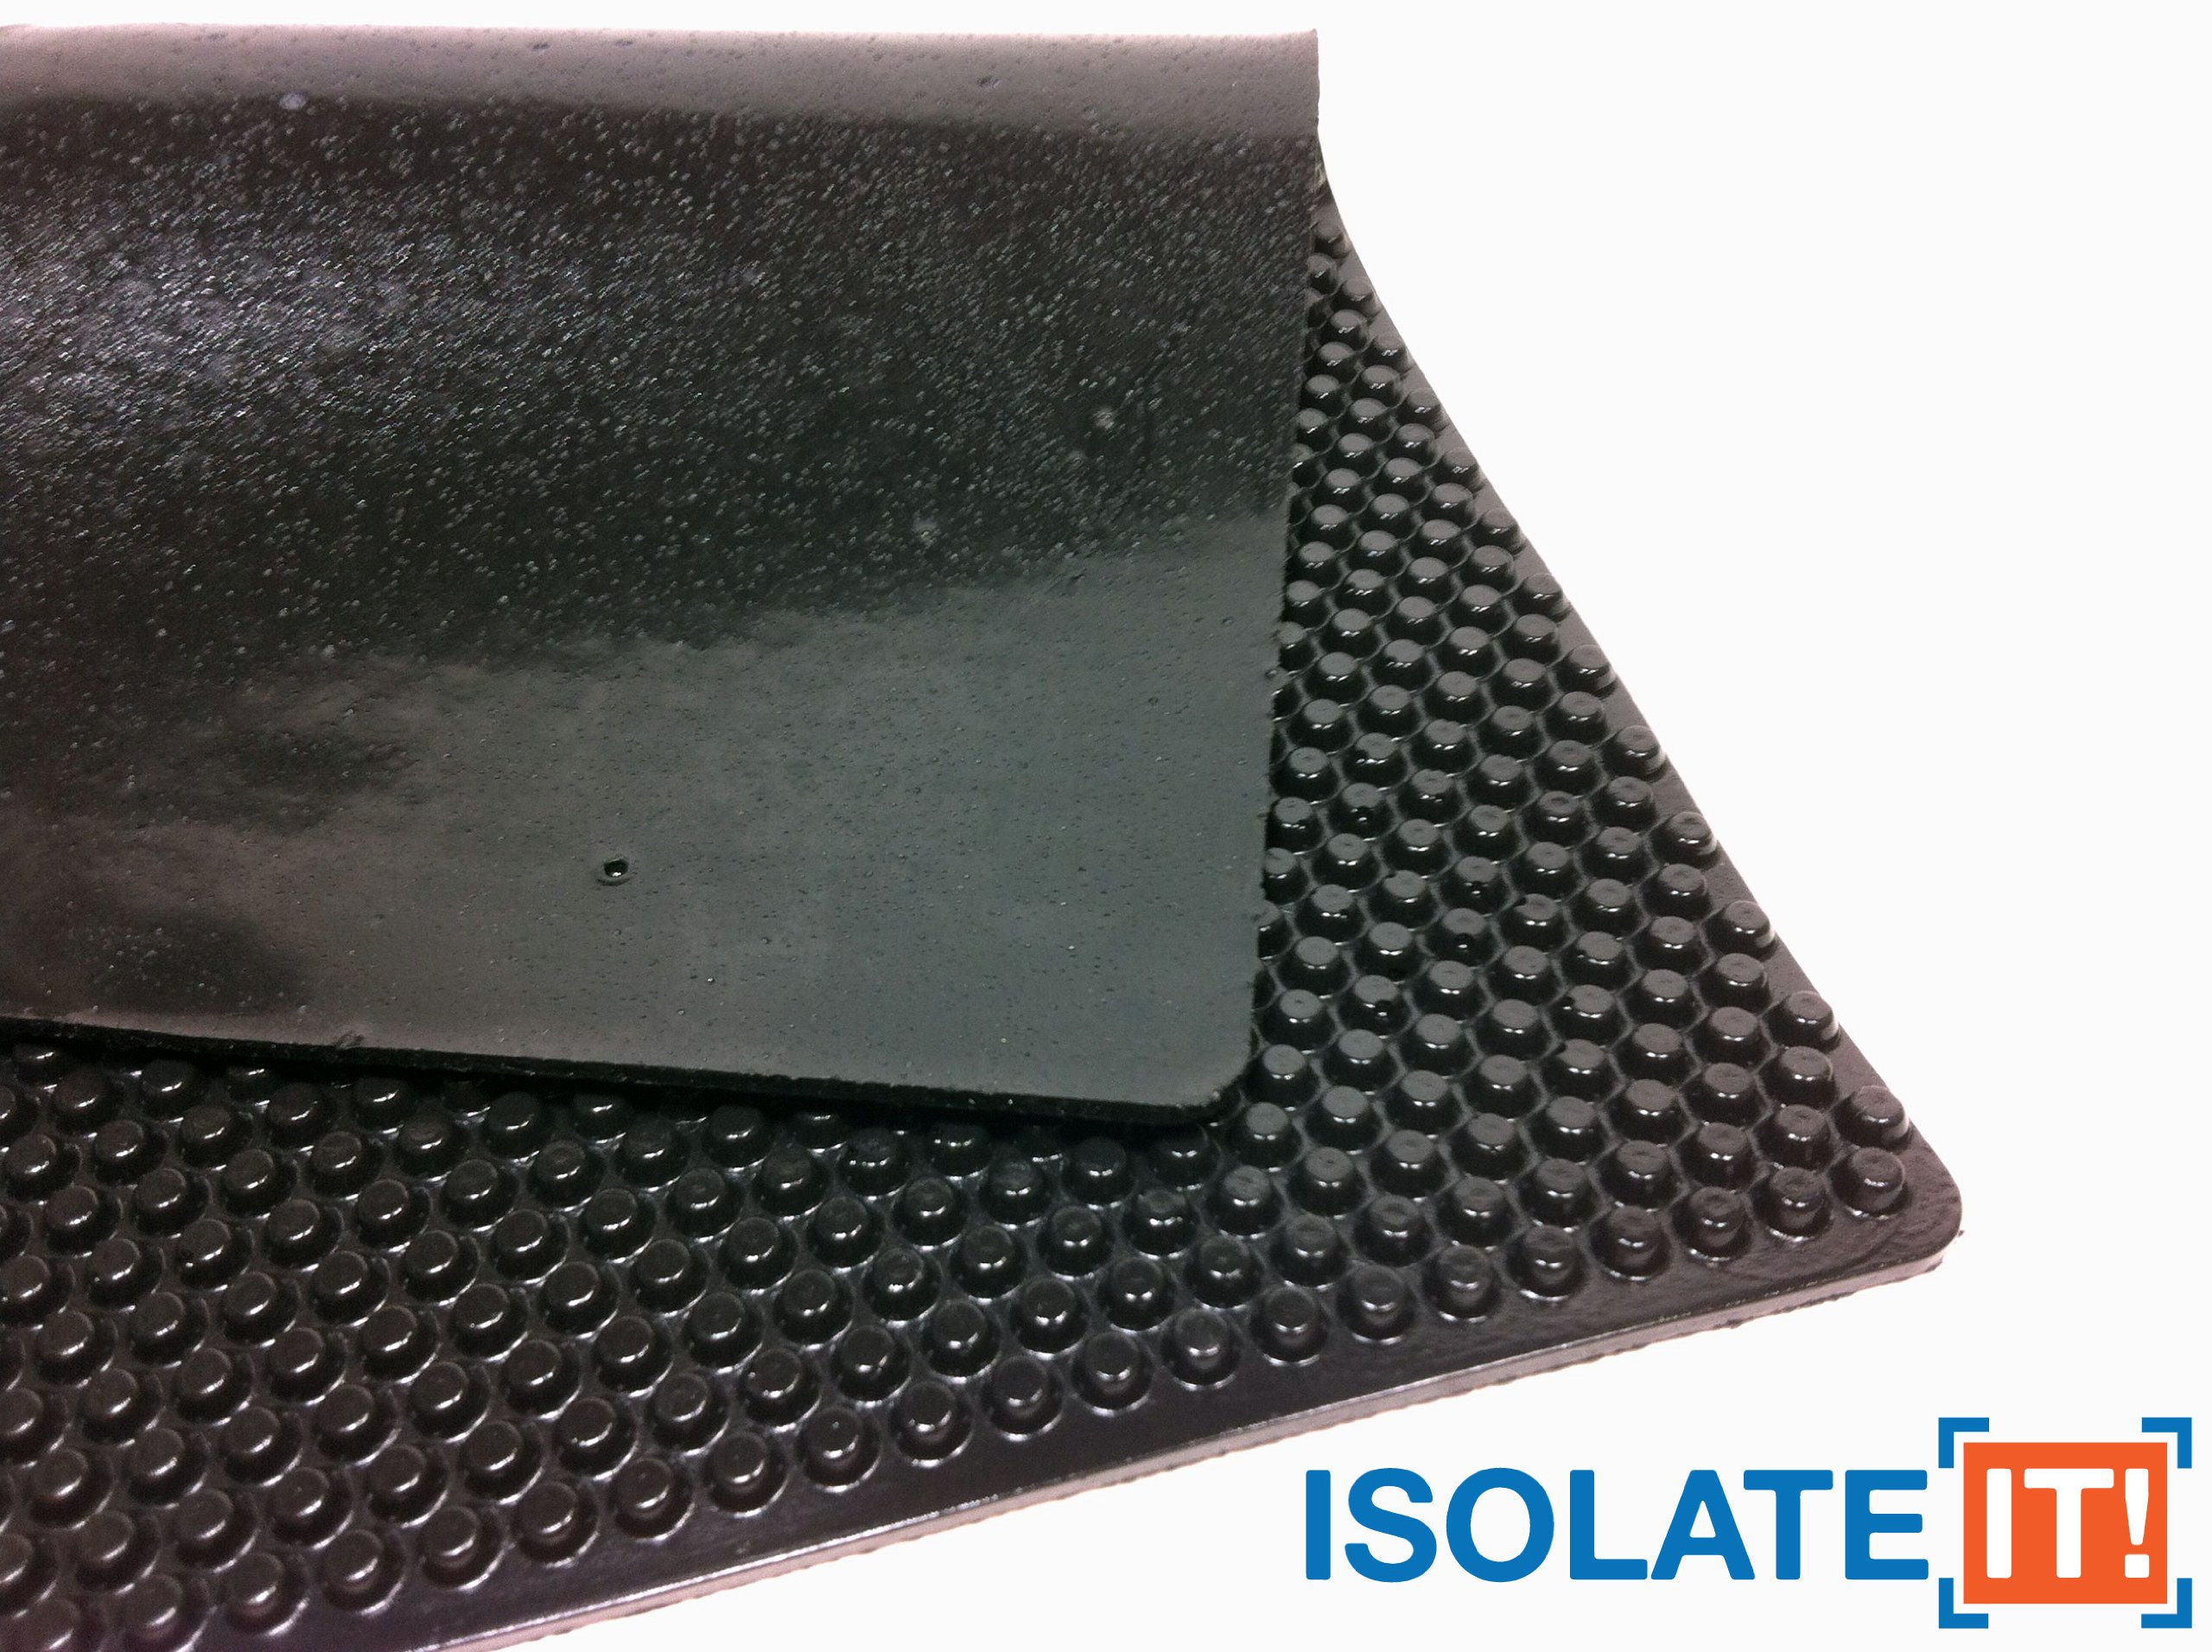 Isolate It!: Sorbothane X-Tra Flex Acoustic Vibration Damping Sheet Stock (3/16 x 12 x 14in) 50 Duro - 1 Sheet by Isolate It! (Image #3)